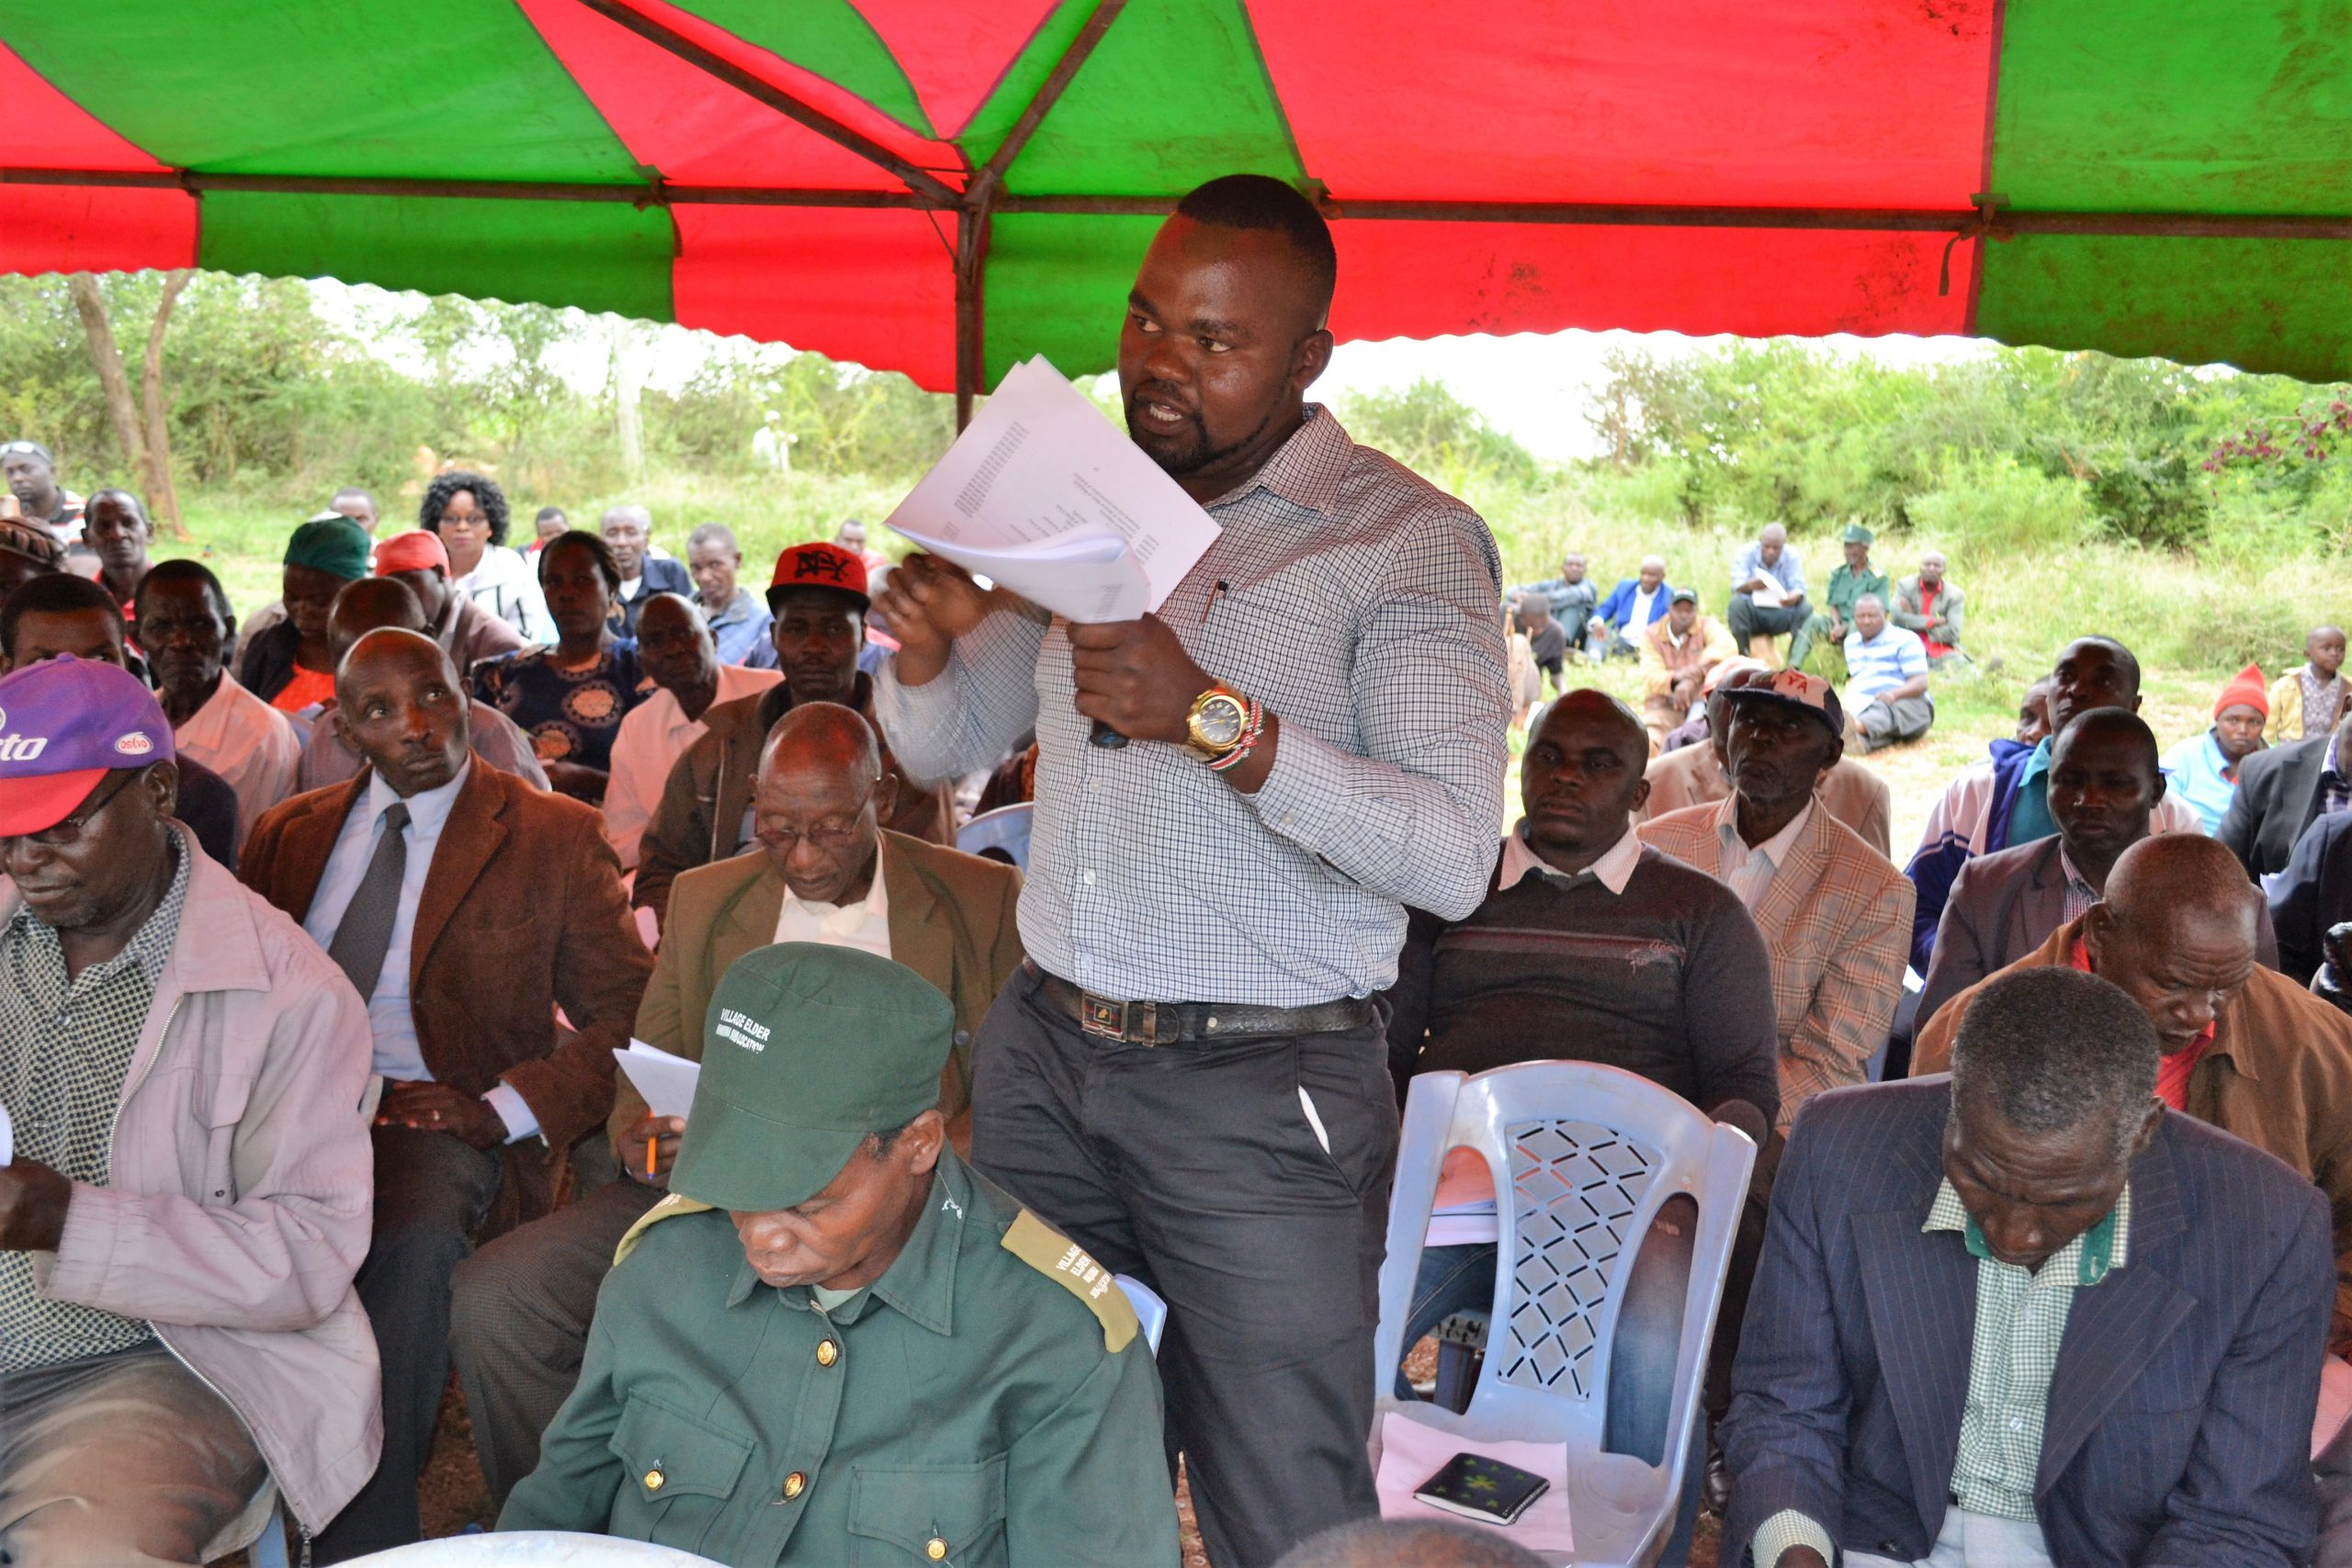 Boniface-Musyoka-a-resident-of-Makima-Ward-in-Embu-giving-his-views-during-a-Public-Participation-Forum